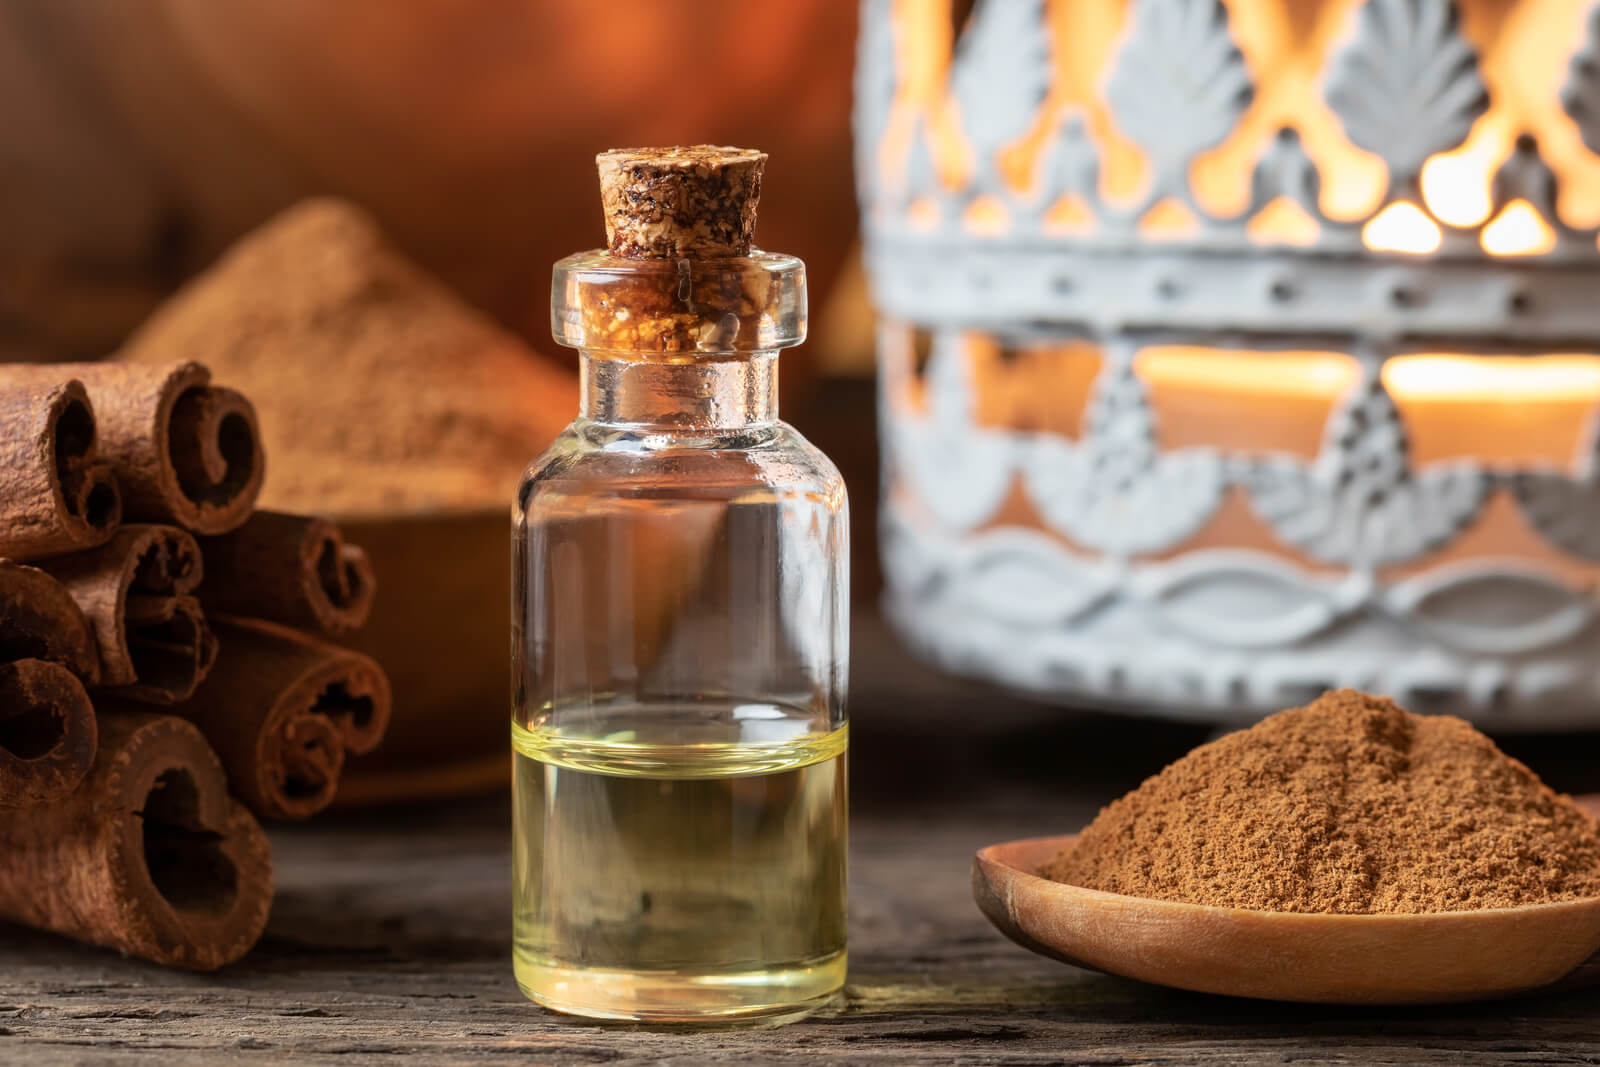 Cinnamon Herbal Yeast Infection Remedy